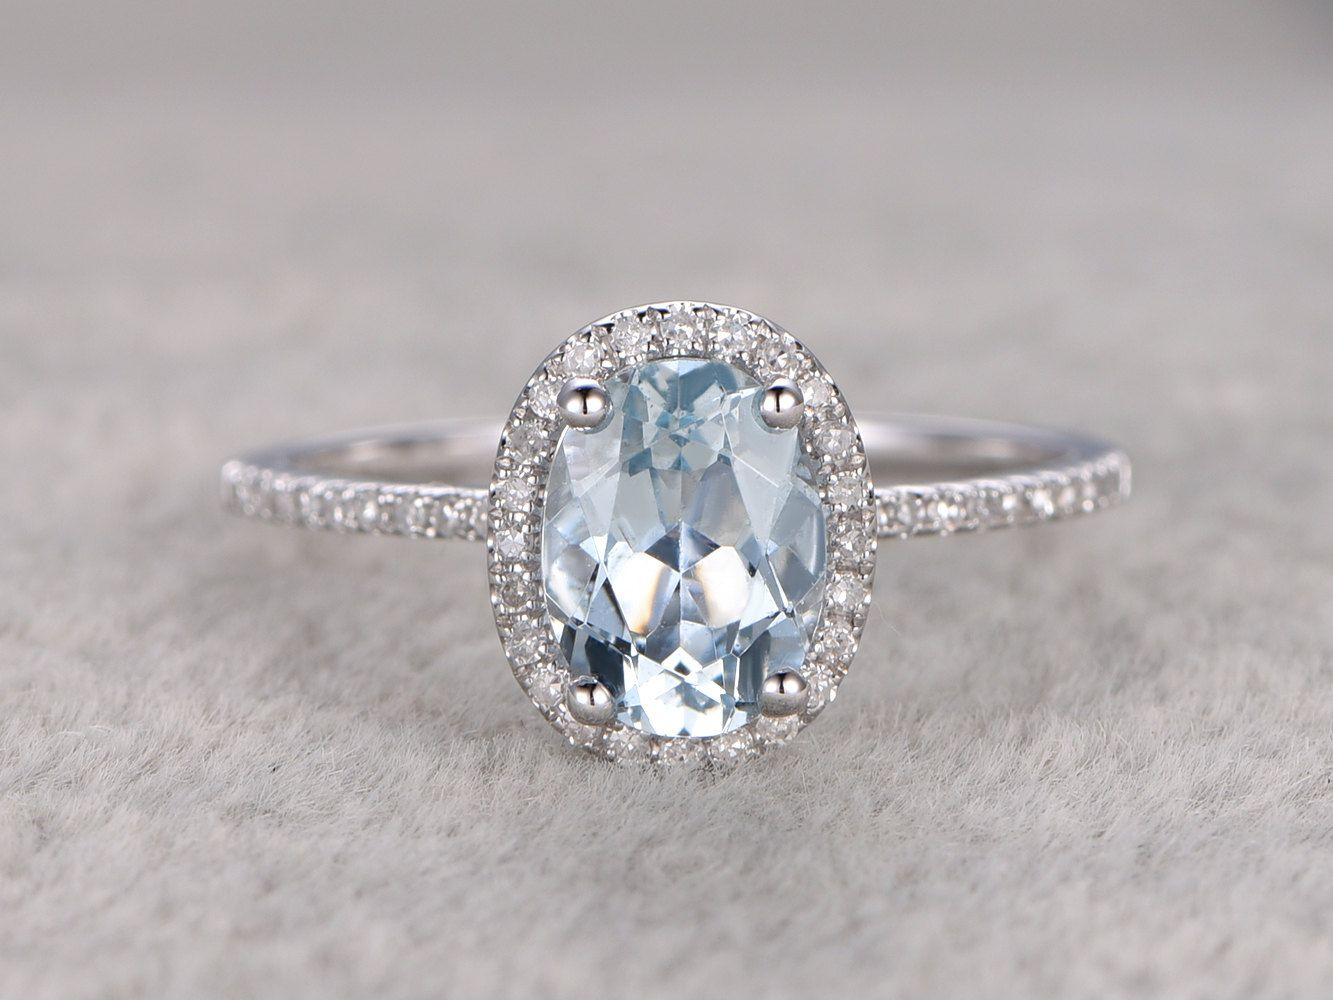 Engagement & Wedding Jewelry & Watches Solid 14k Yellow Gold Genuine Natural Sparkly Aquamarine Engagement Diamond Ring